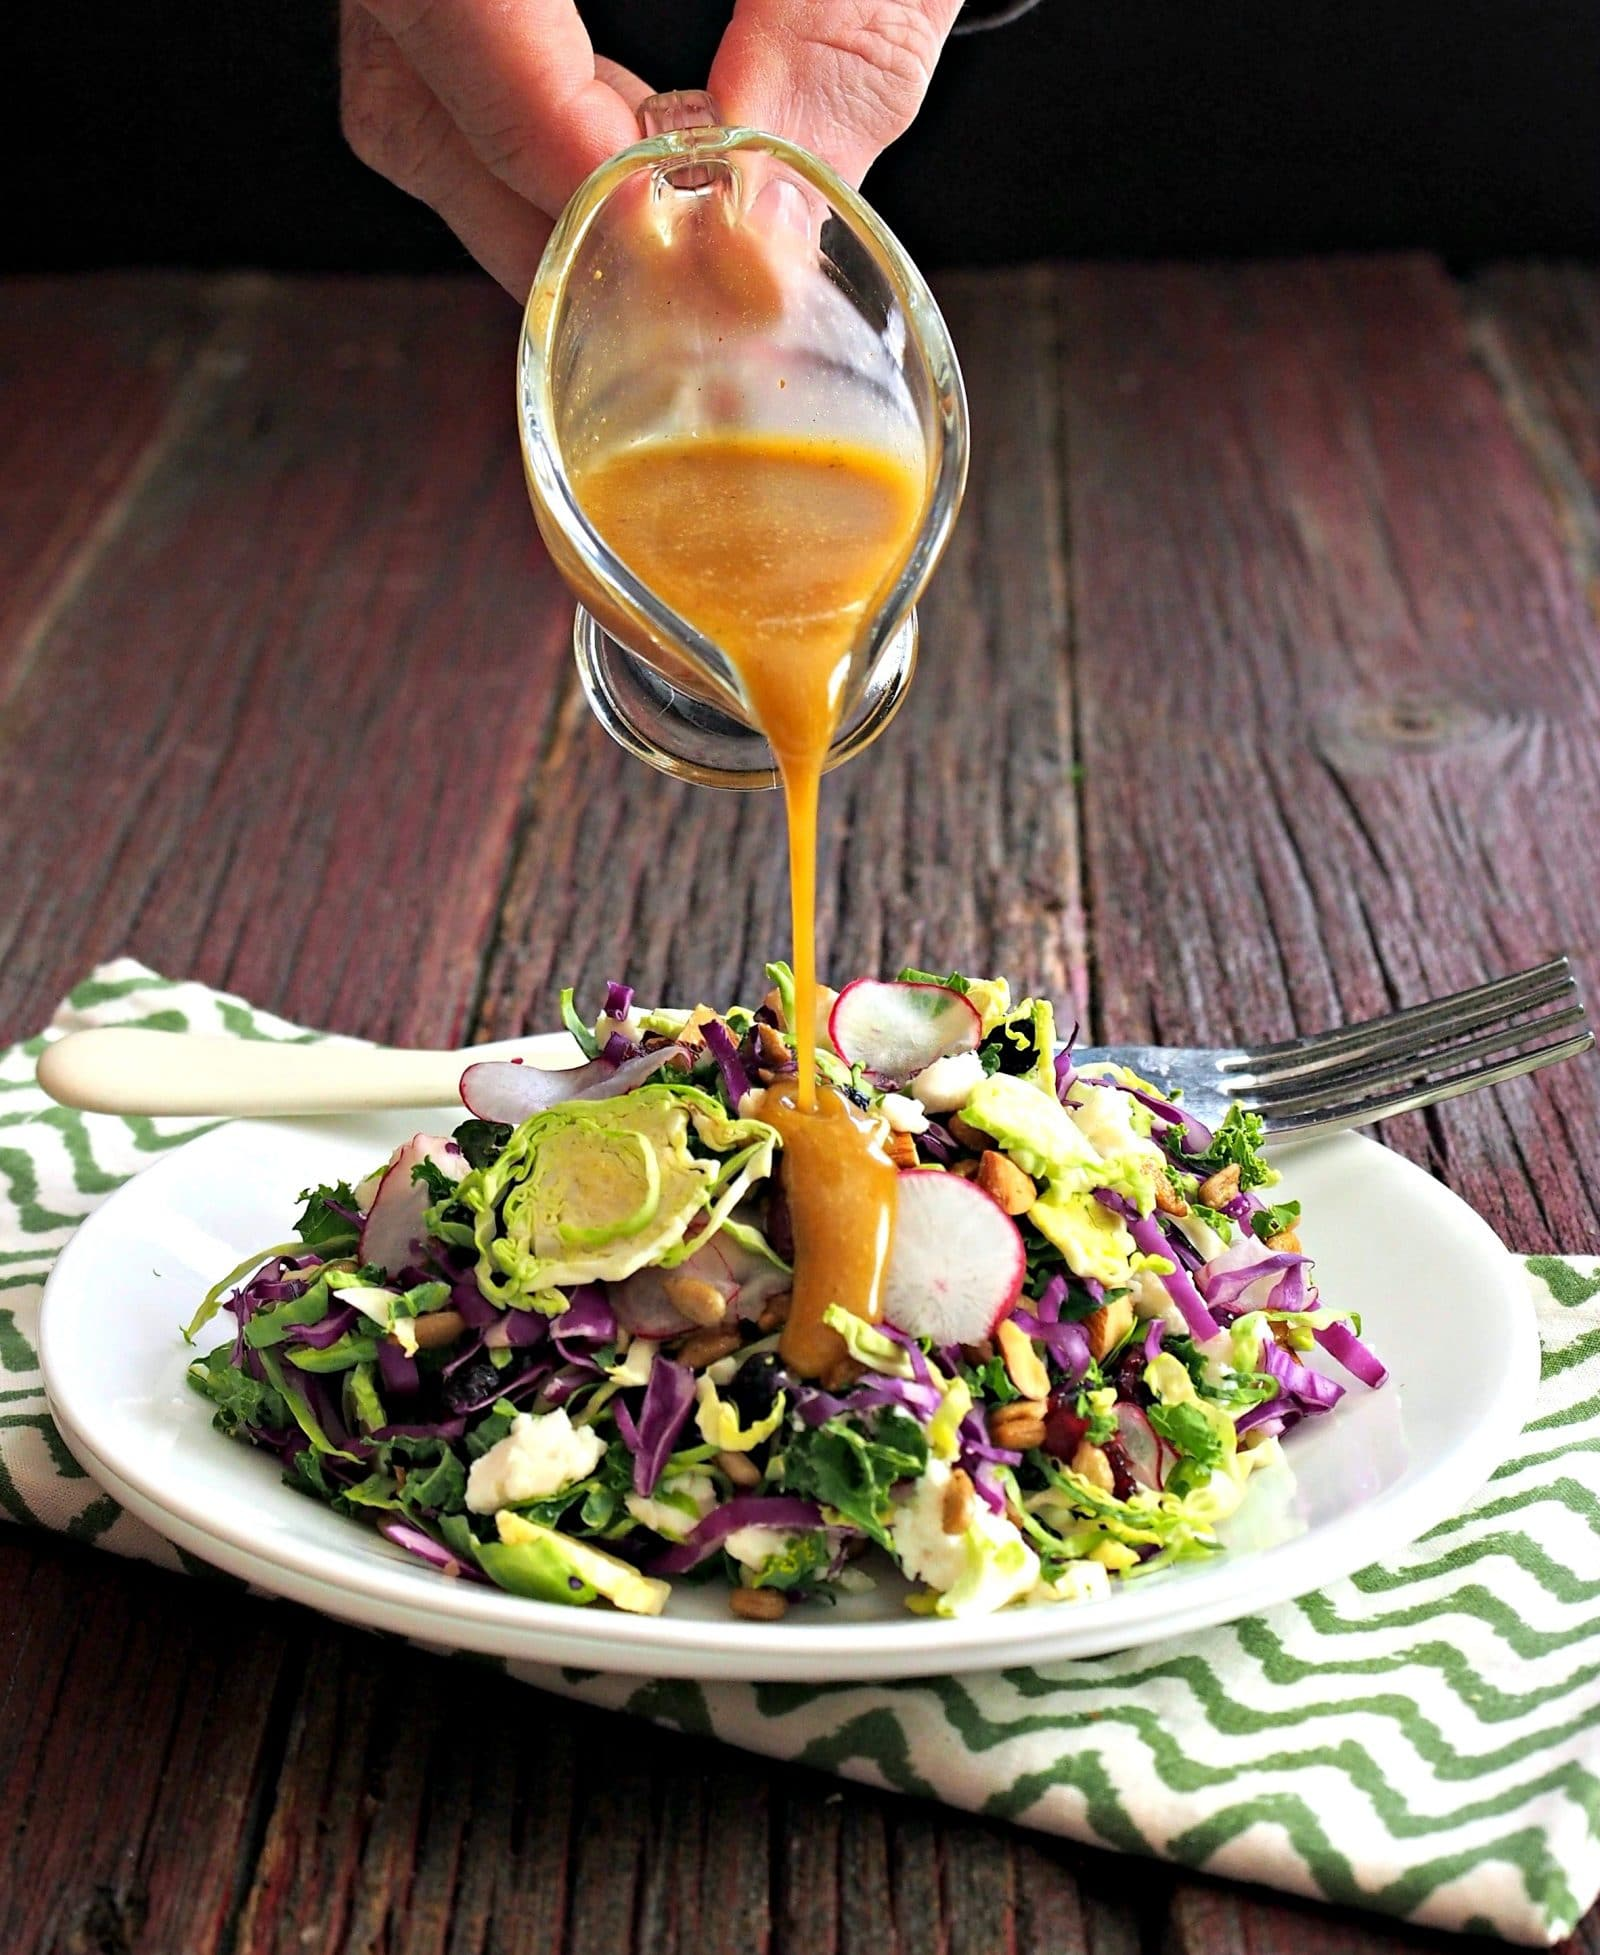 Power Salad with Spicy Honey Vinaigrette is packed with flavor & nutrients. Kale, broccoli, almonds, & others then drizzled with Spicy Honey Vinaigrette. Simply Sated